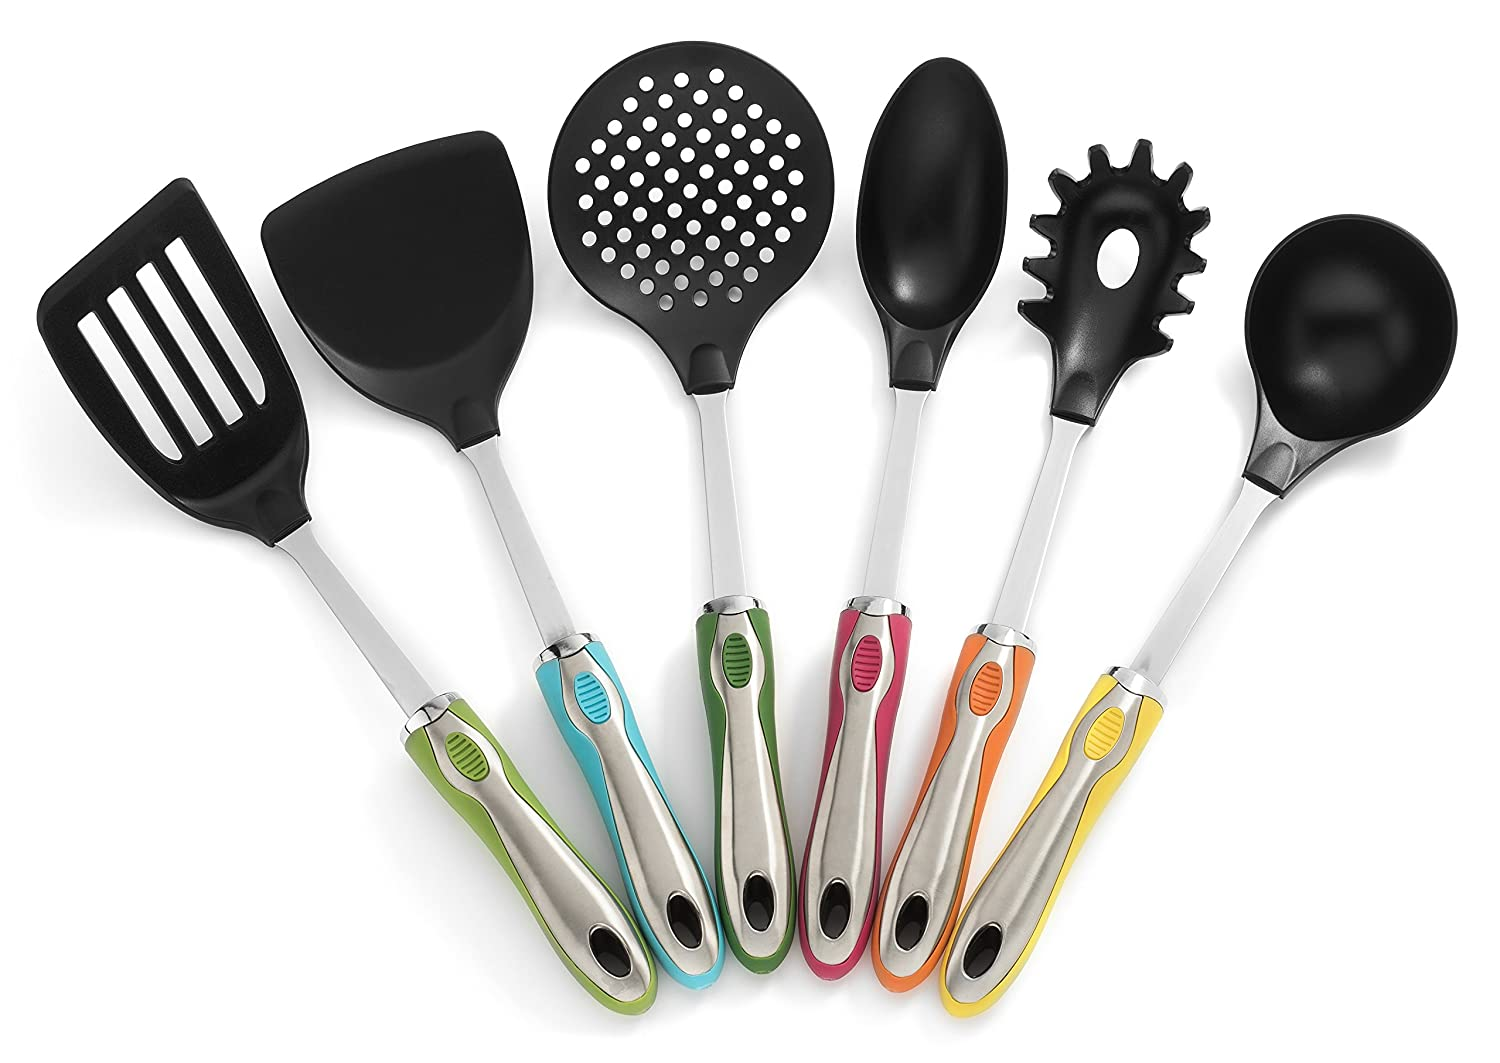 Amazon kitchen utensils with holder 7 pc cute utensil set amazon kitchen utensils with holder 7 pc cute utensil set colorful handles stainless steel core and large nylon heads by rsg kitchen dining teraionfo